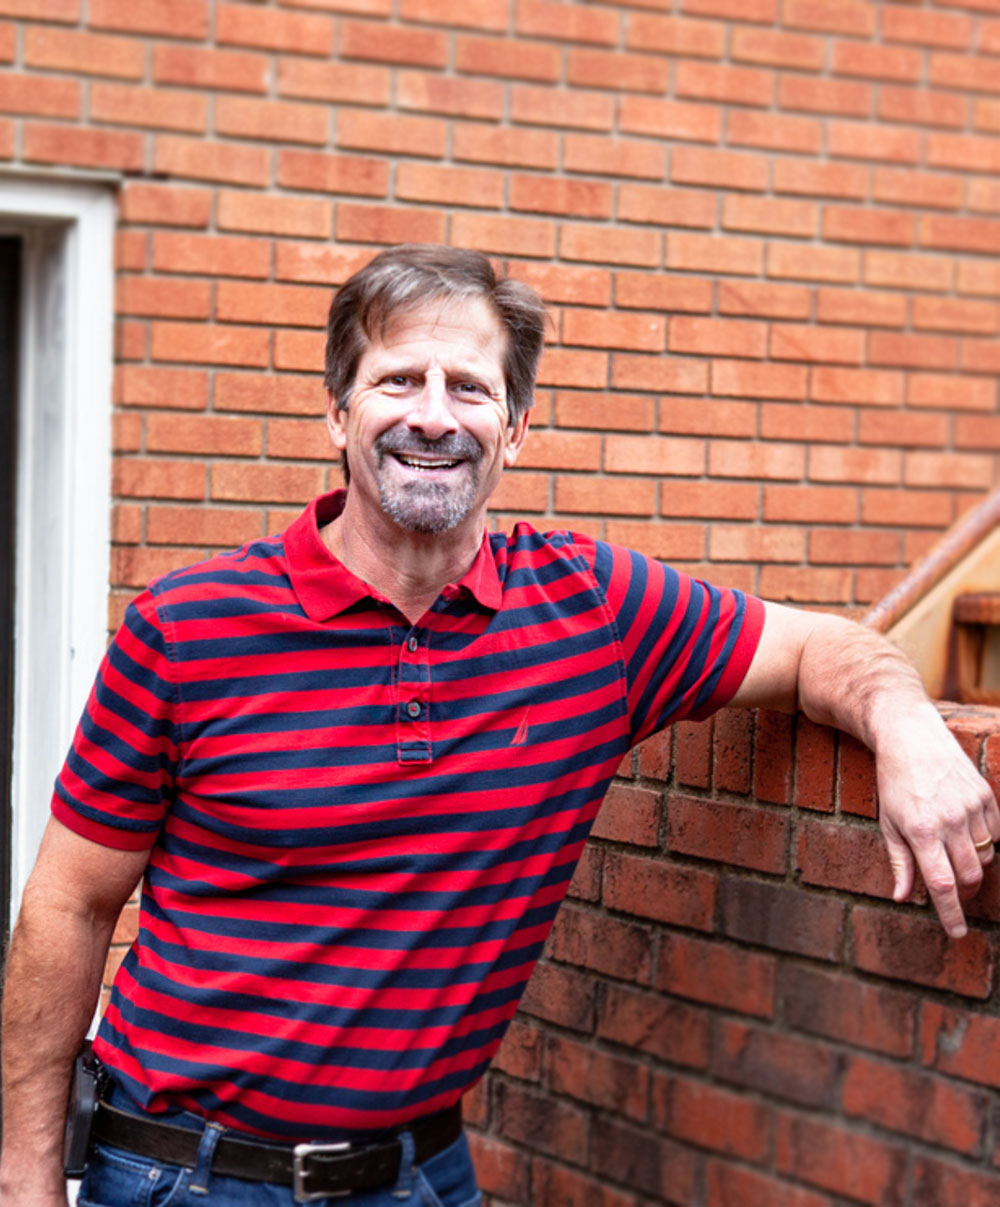 Paul is married to Michelle his wife of over three decades. He works in the transportation industry and has resided in Greensboro since 1984.